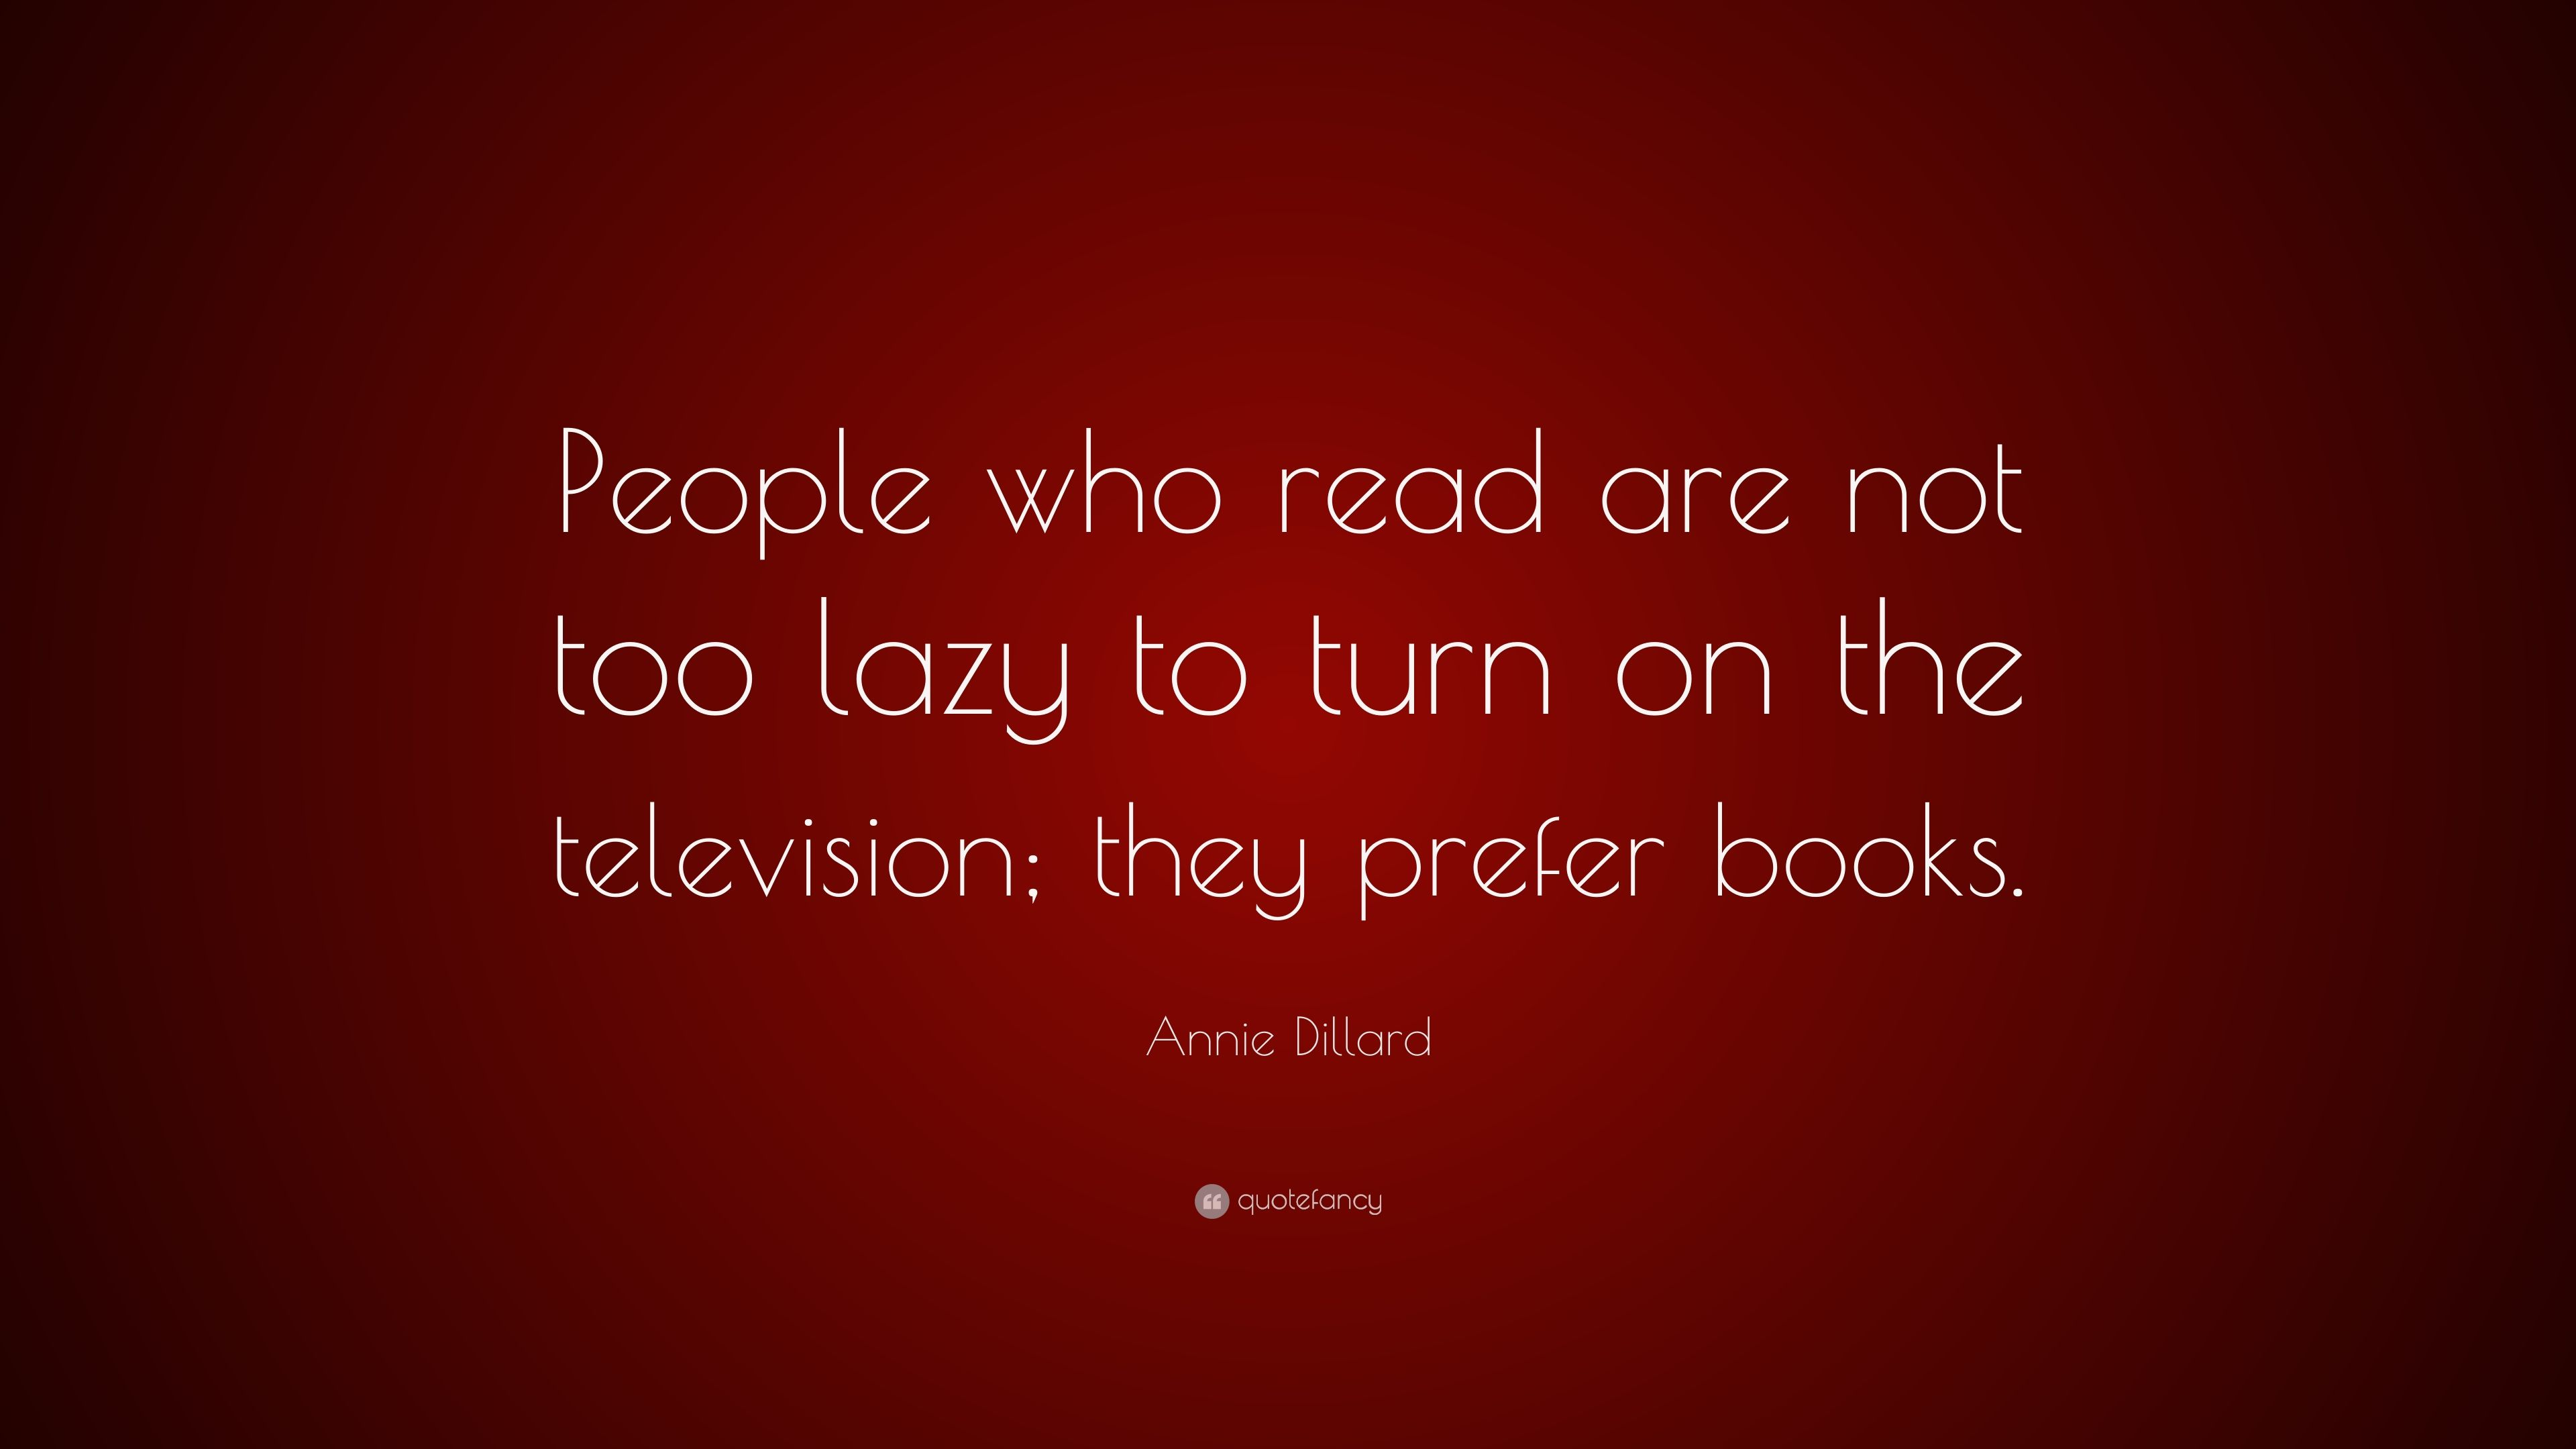 Do not be lazy - read